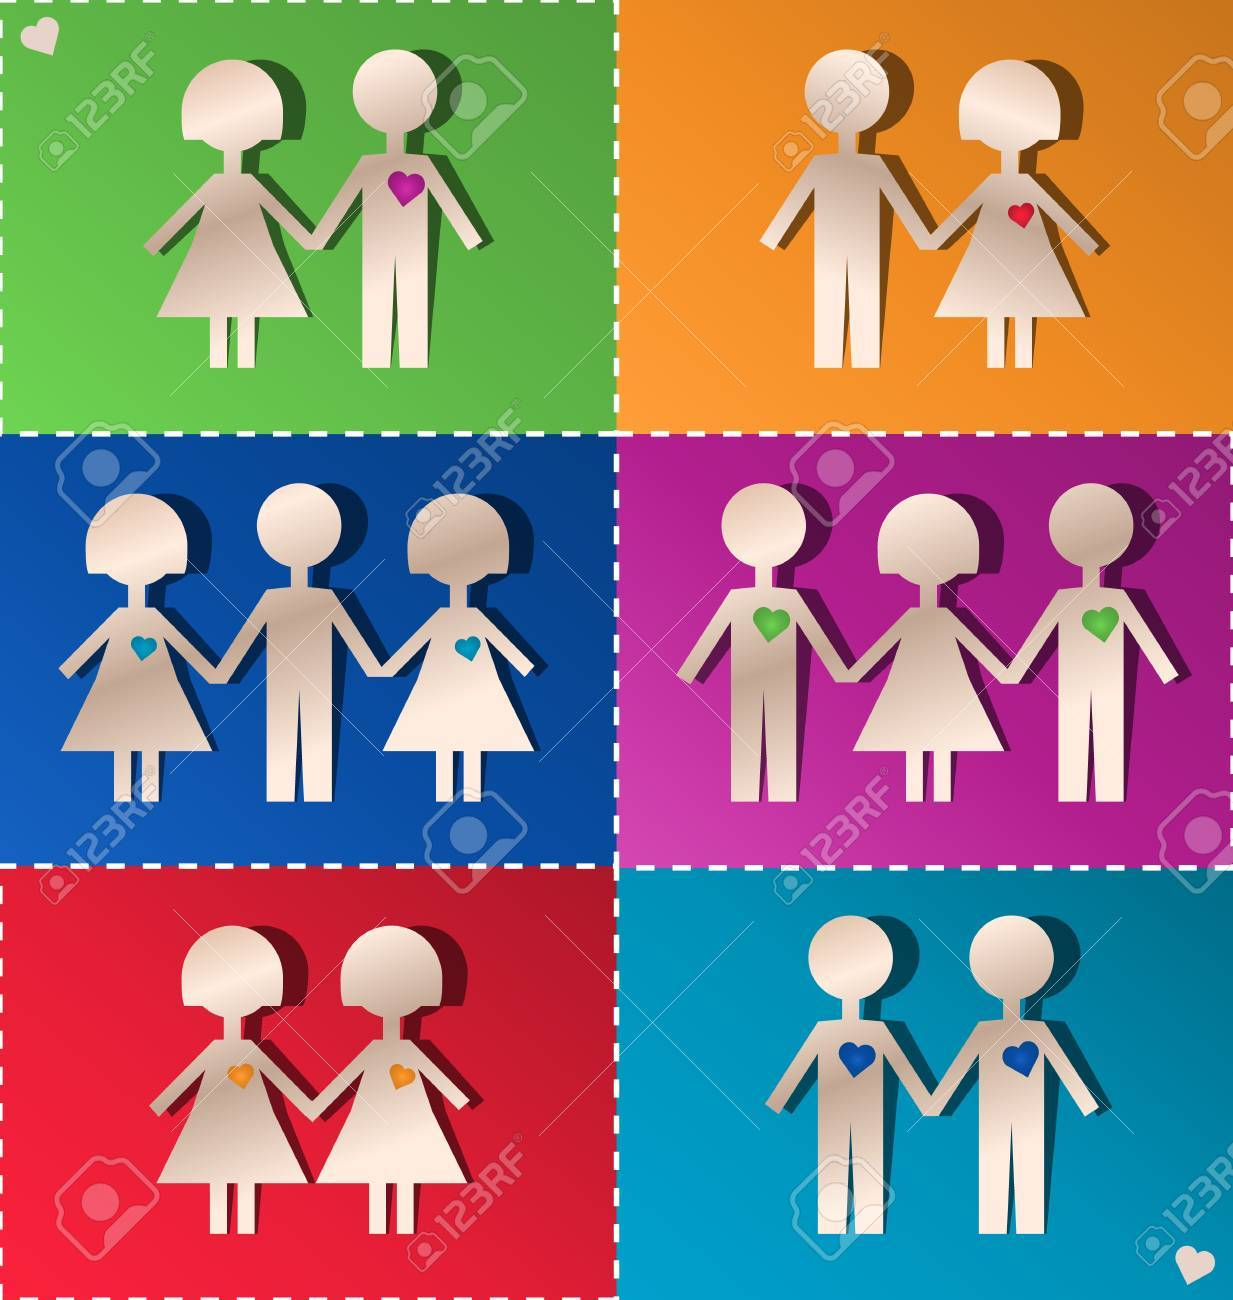 Paper clipping of couples and threesomes Stock Vector - 17111704